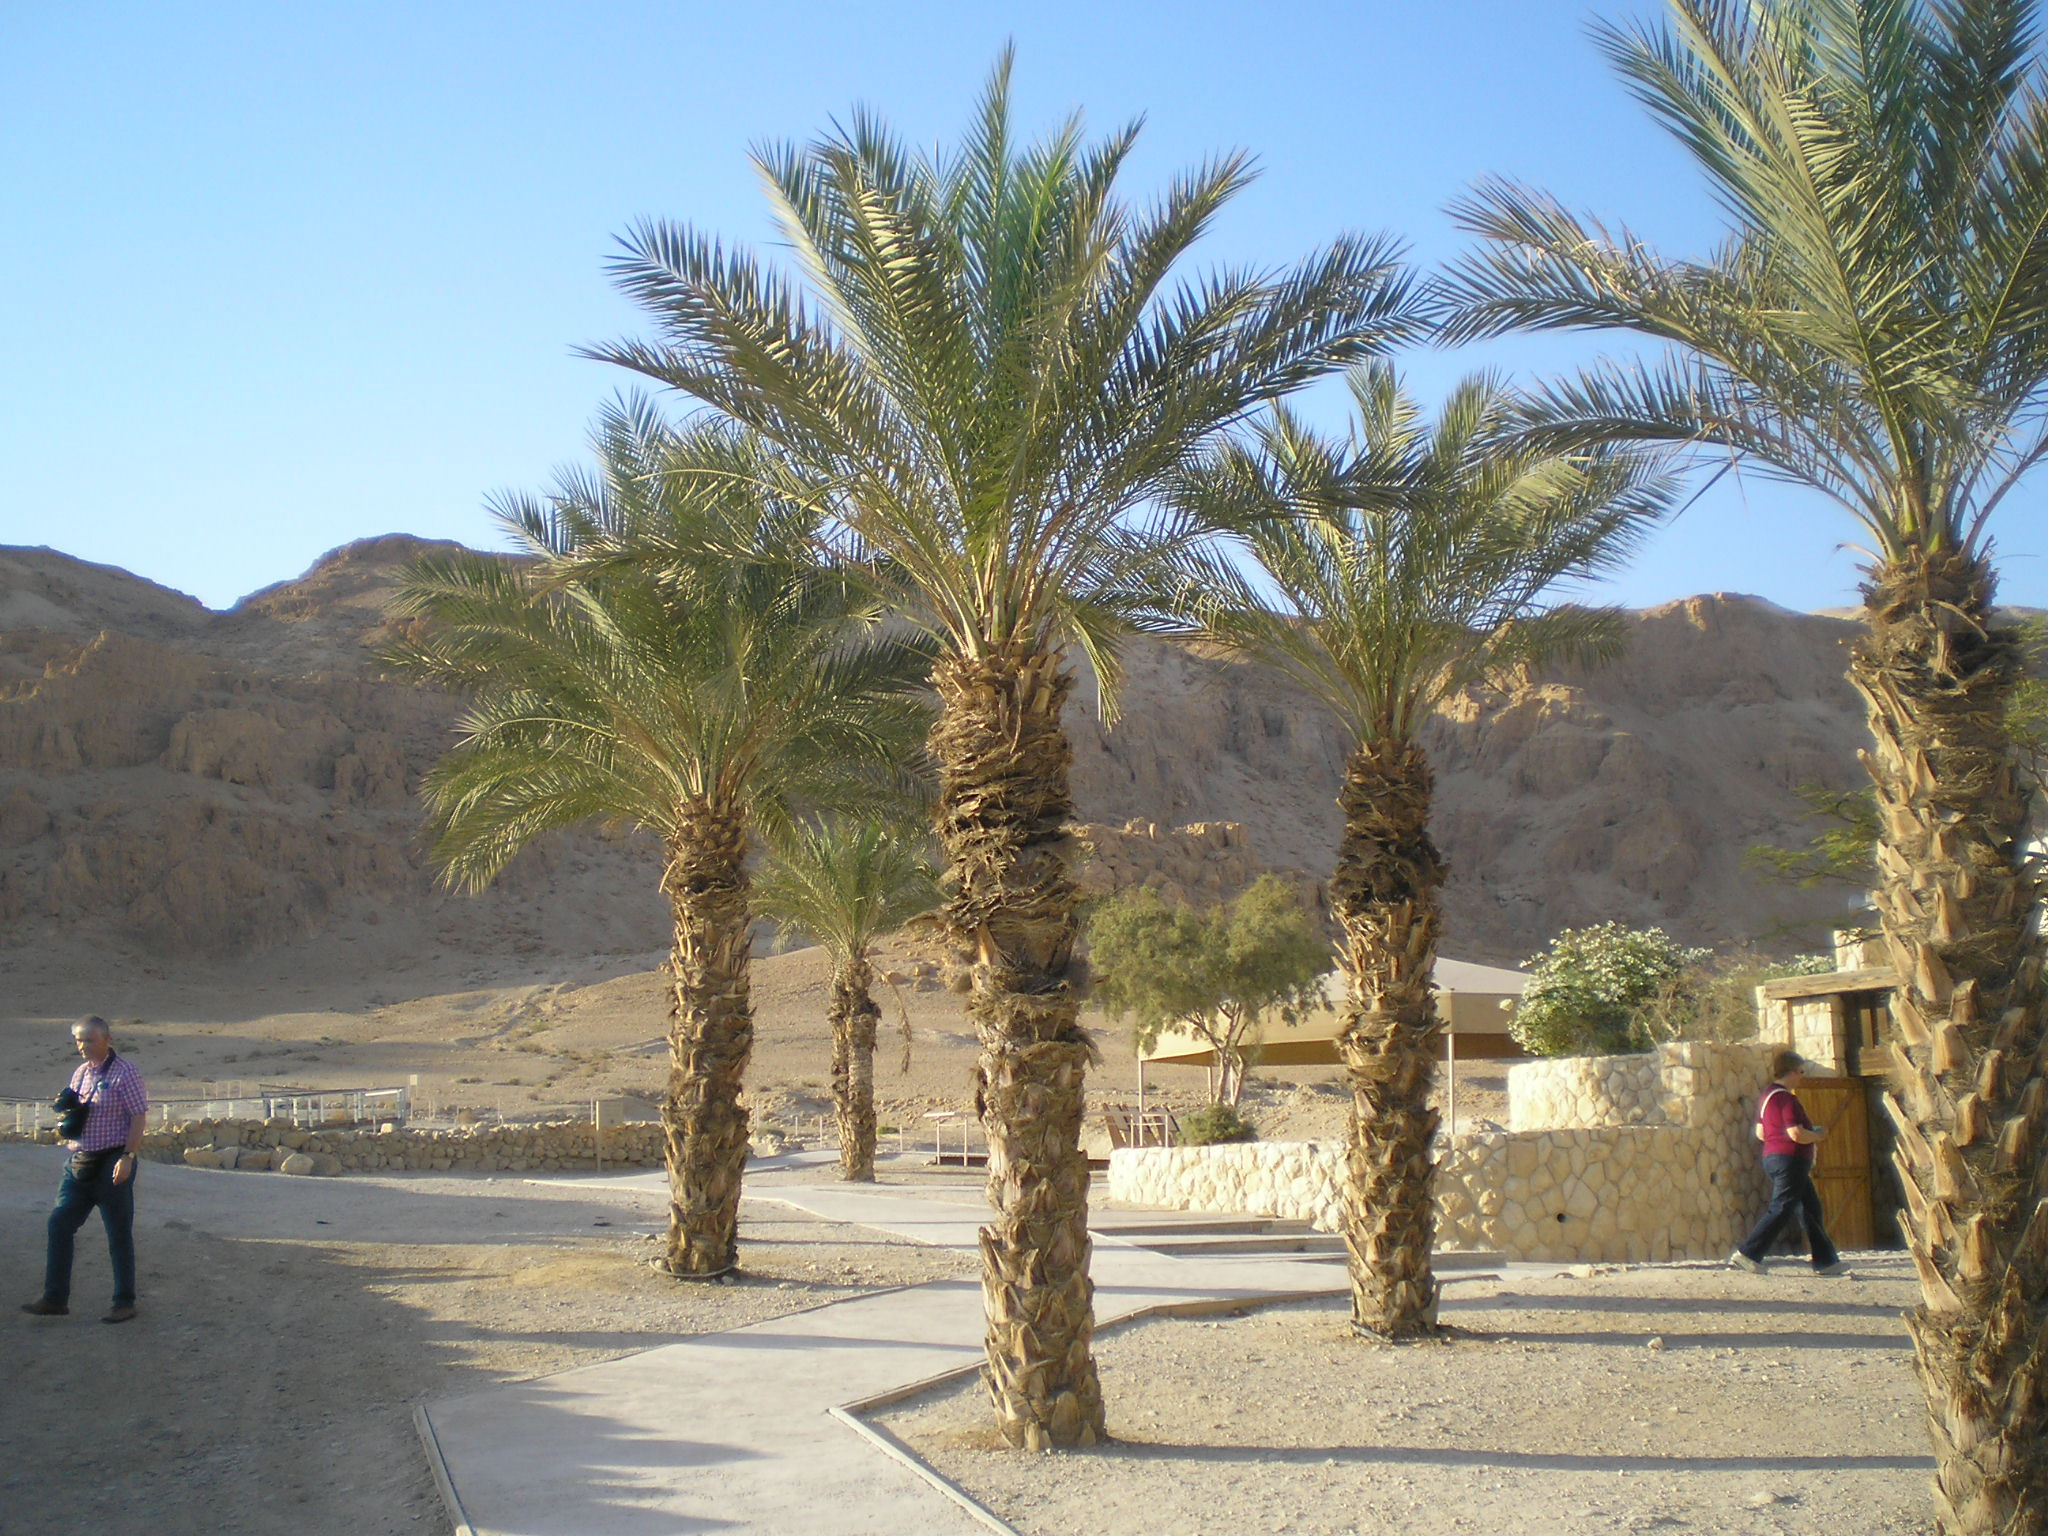 Qumran, where the Dead Sea Scrolls were discovered by a shepherd boy in 1947